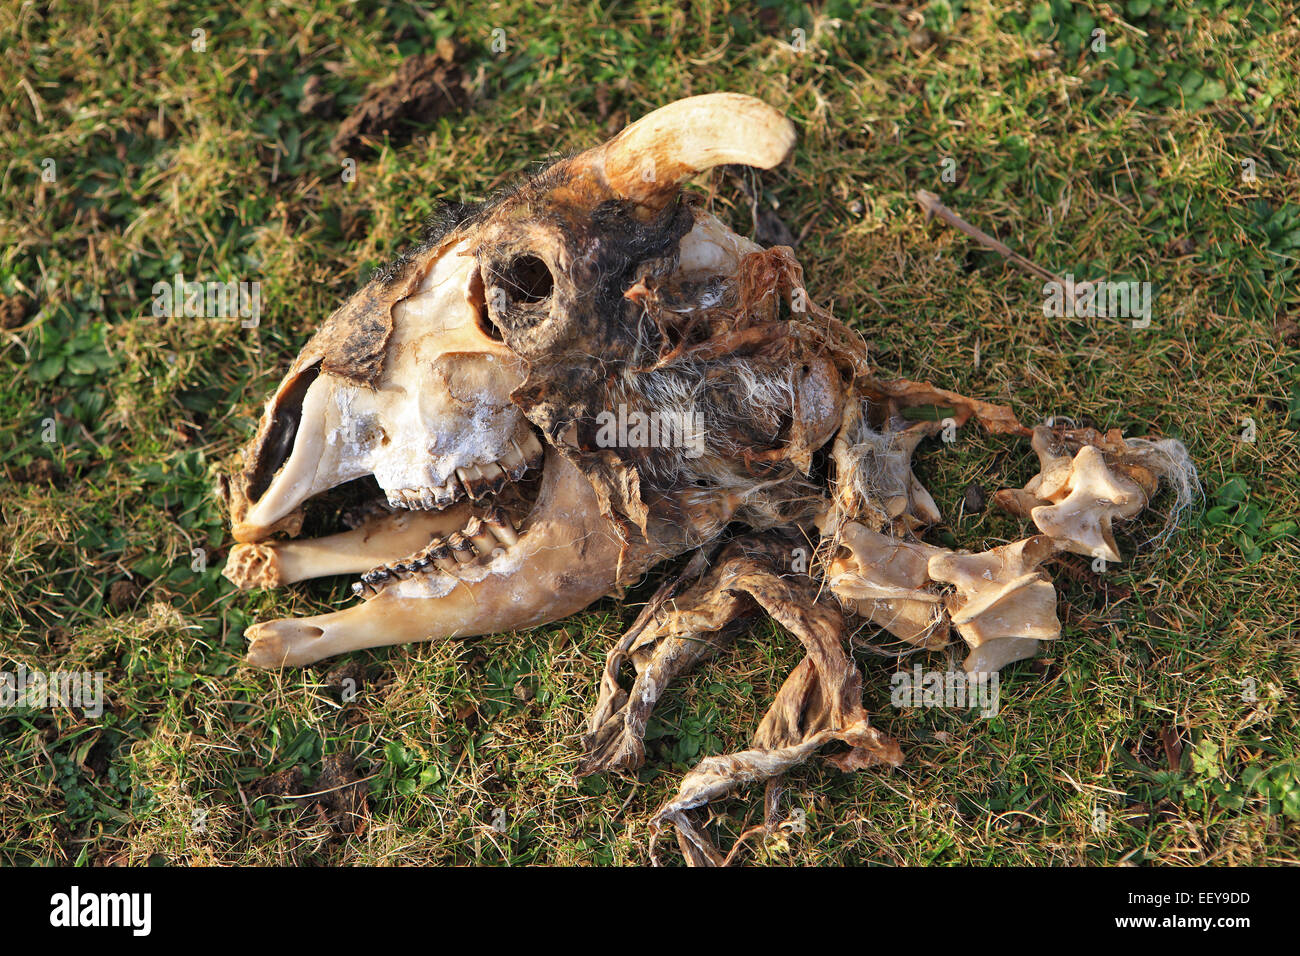 Sheep skull picked clean by scavengers - Stock Image